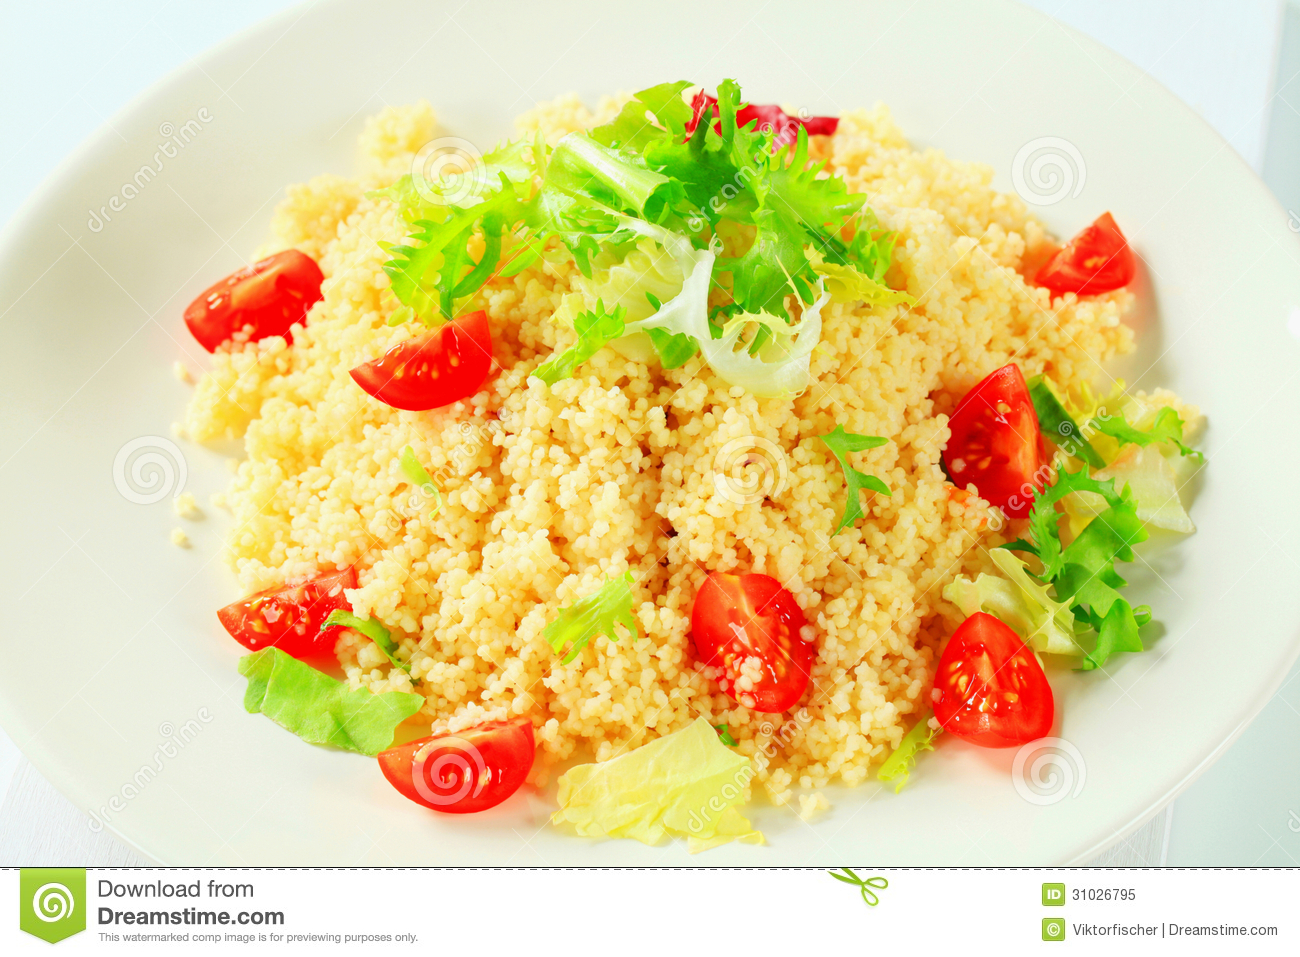 Couscous With Salad Greens And Tomatoes Royalty Free Stock ...